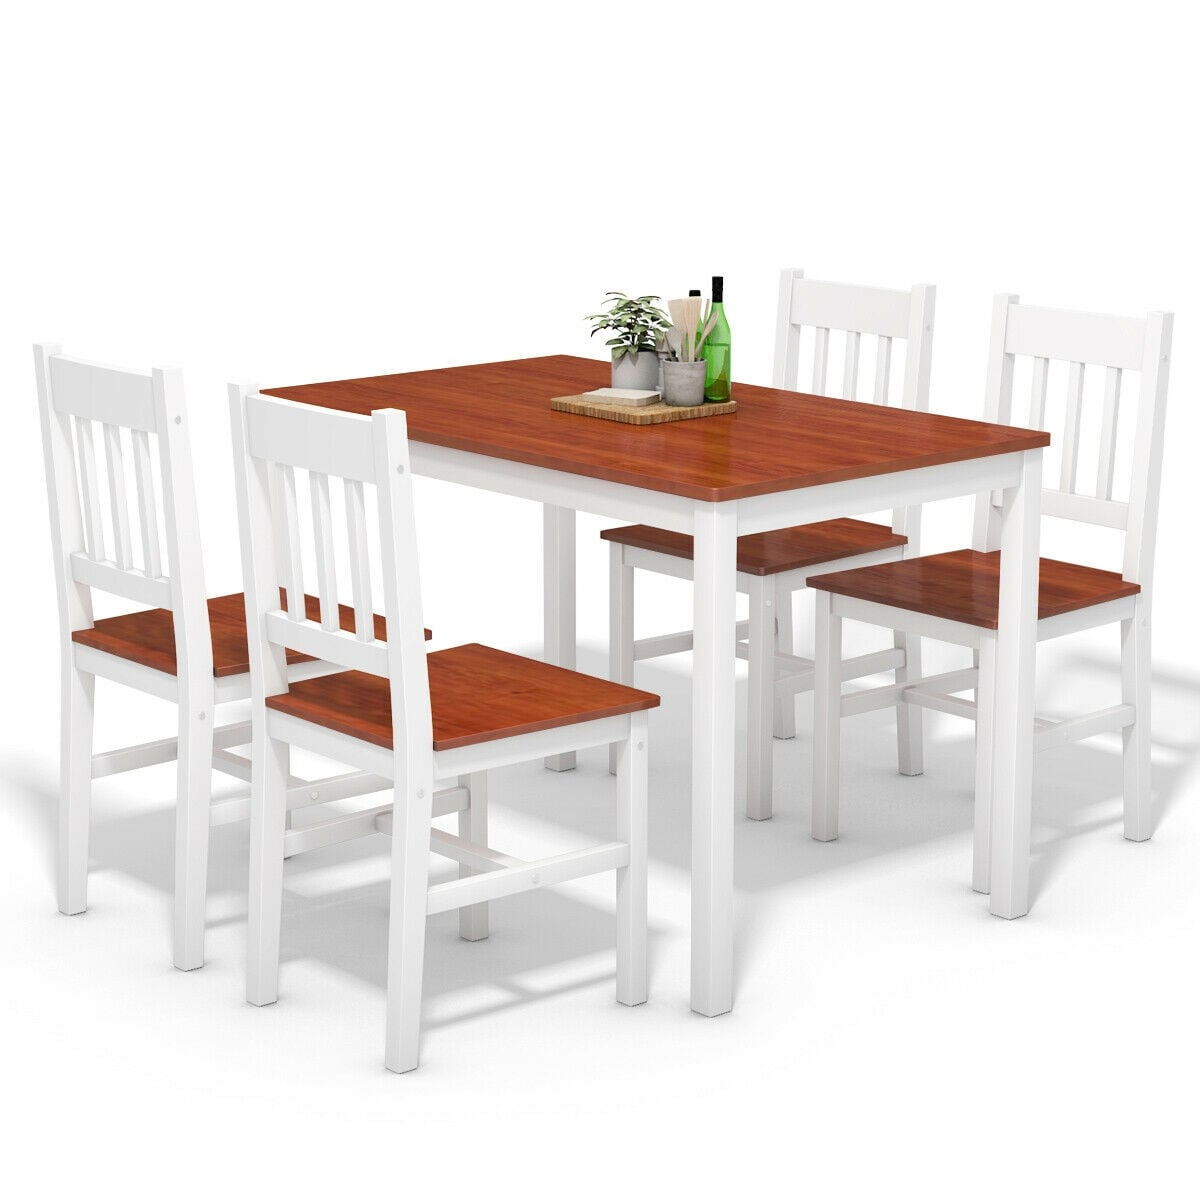 Shop Gymax 5 Piece Dining Table Set 4 Chairs Solid Wood Home